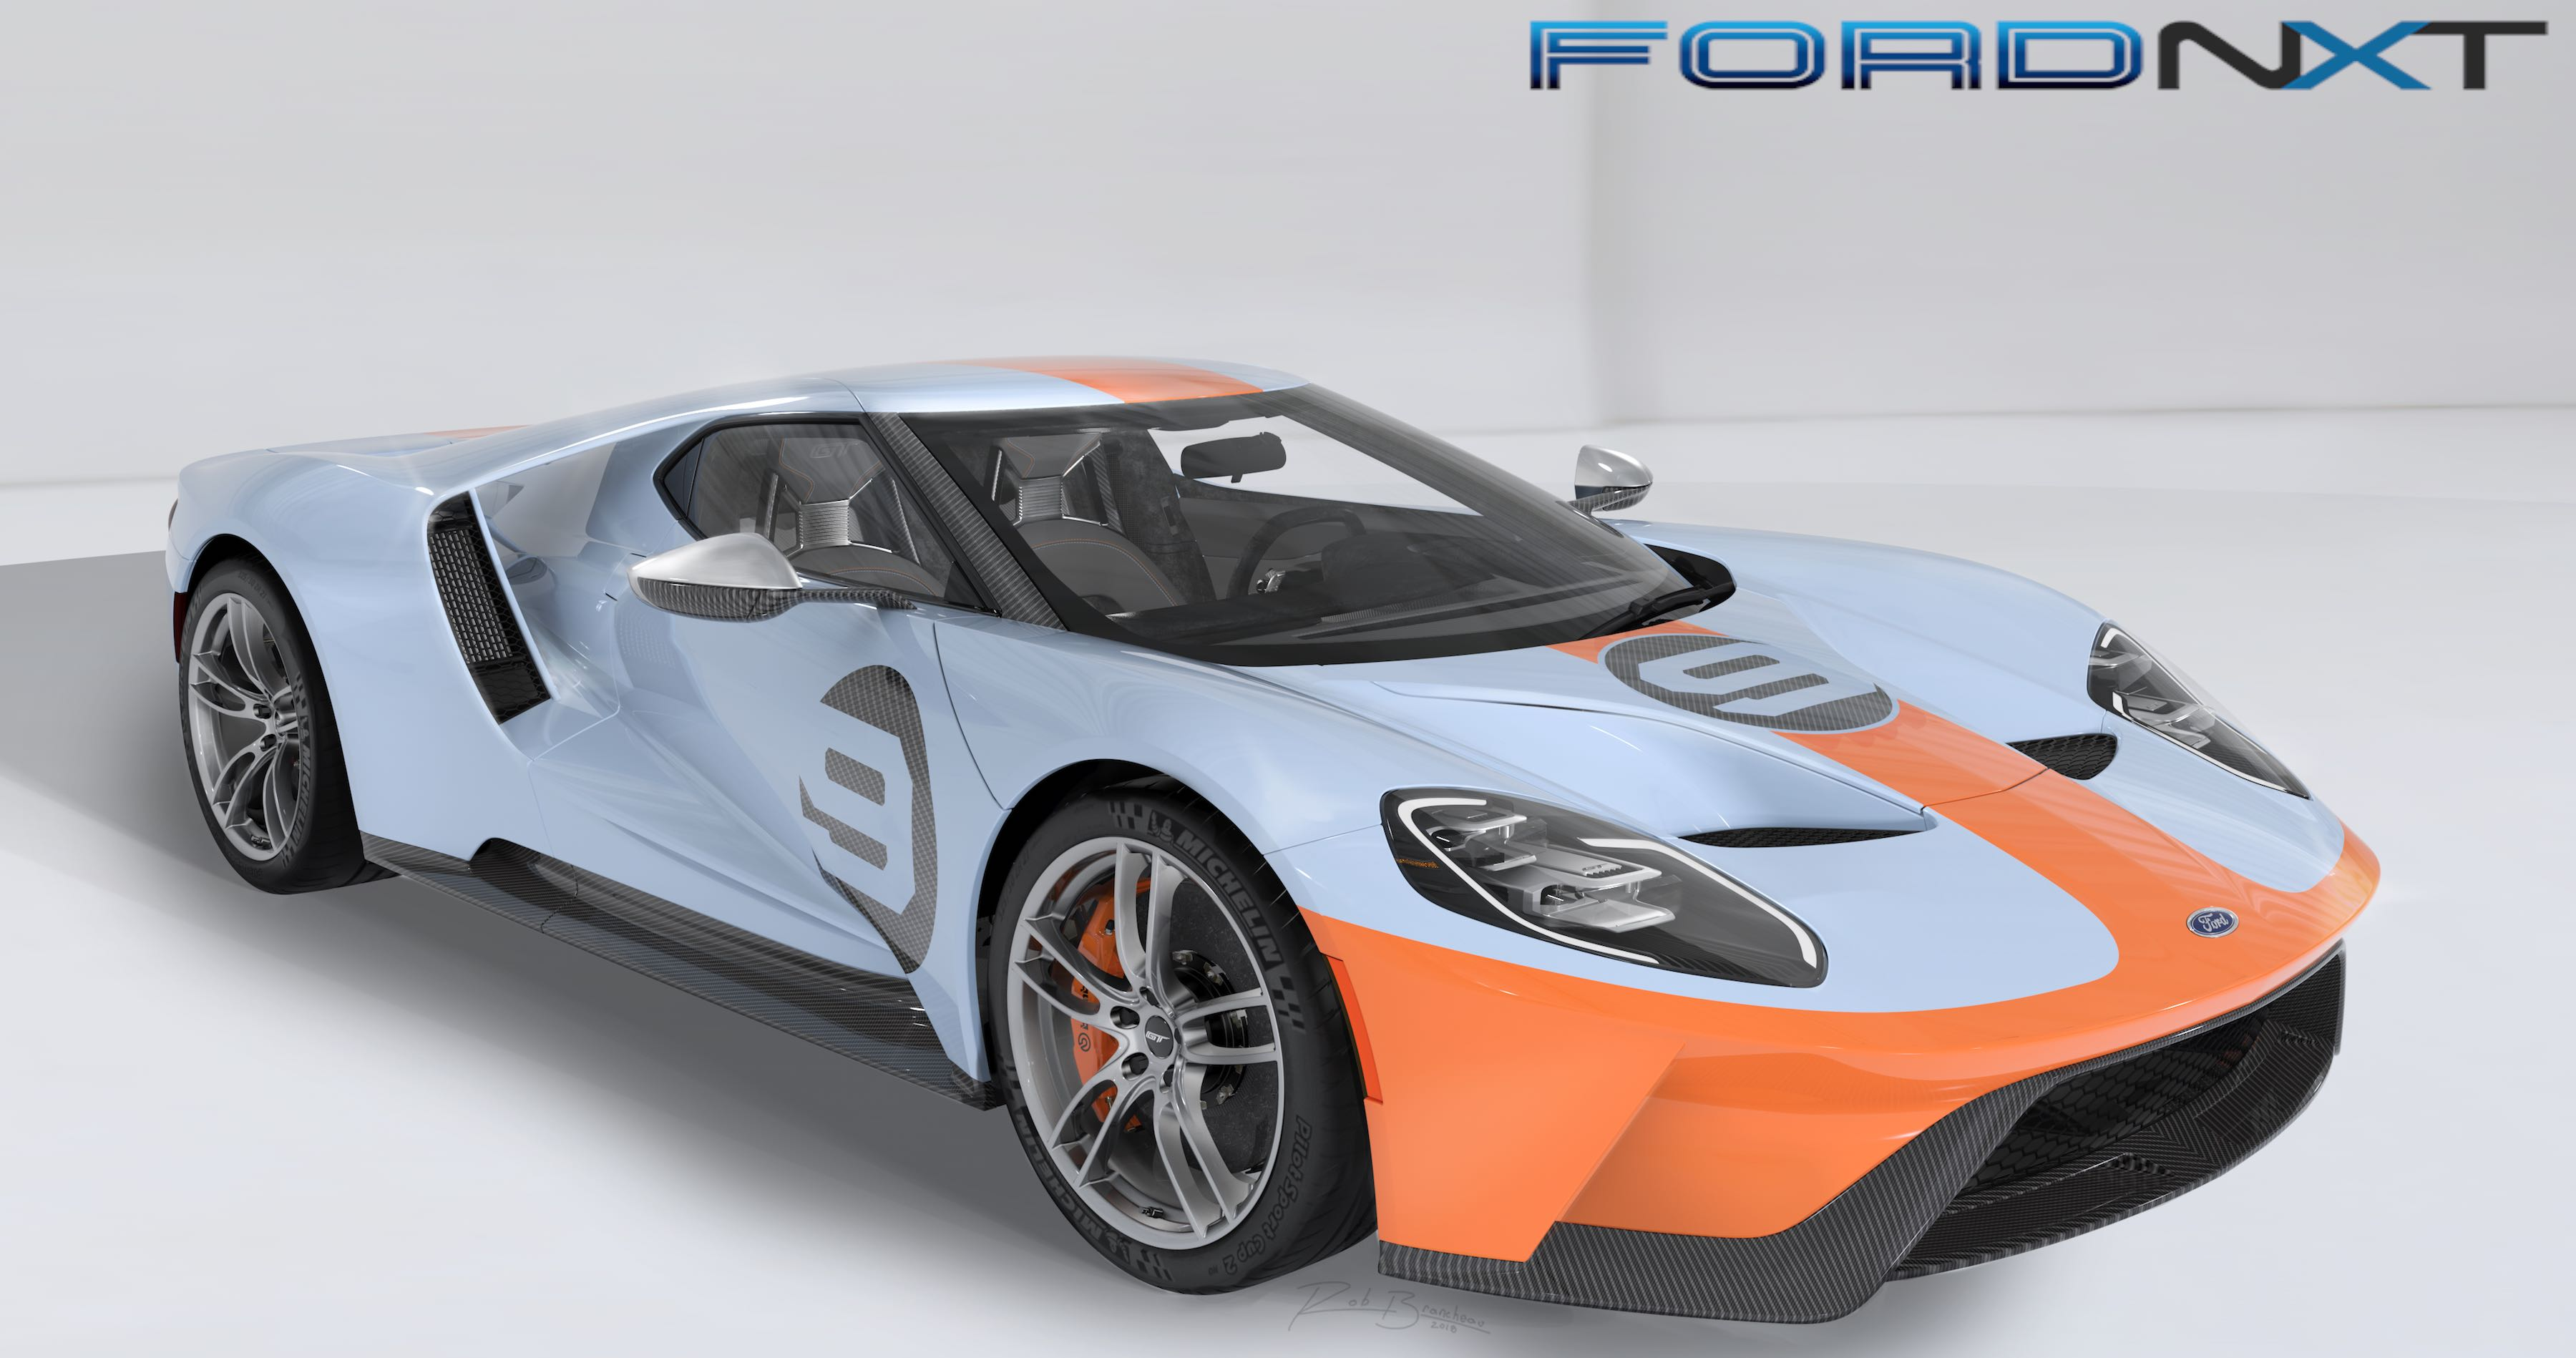 While The Heritage Orange Over Heritage Blue Gulf Oil Livery Is The Real Eye Catcher The Latest Ford Gt Heritage Edition Features A Number Of Special